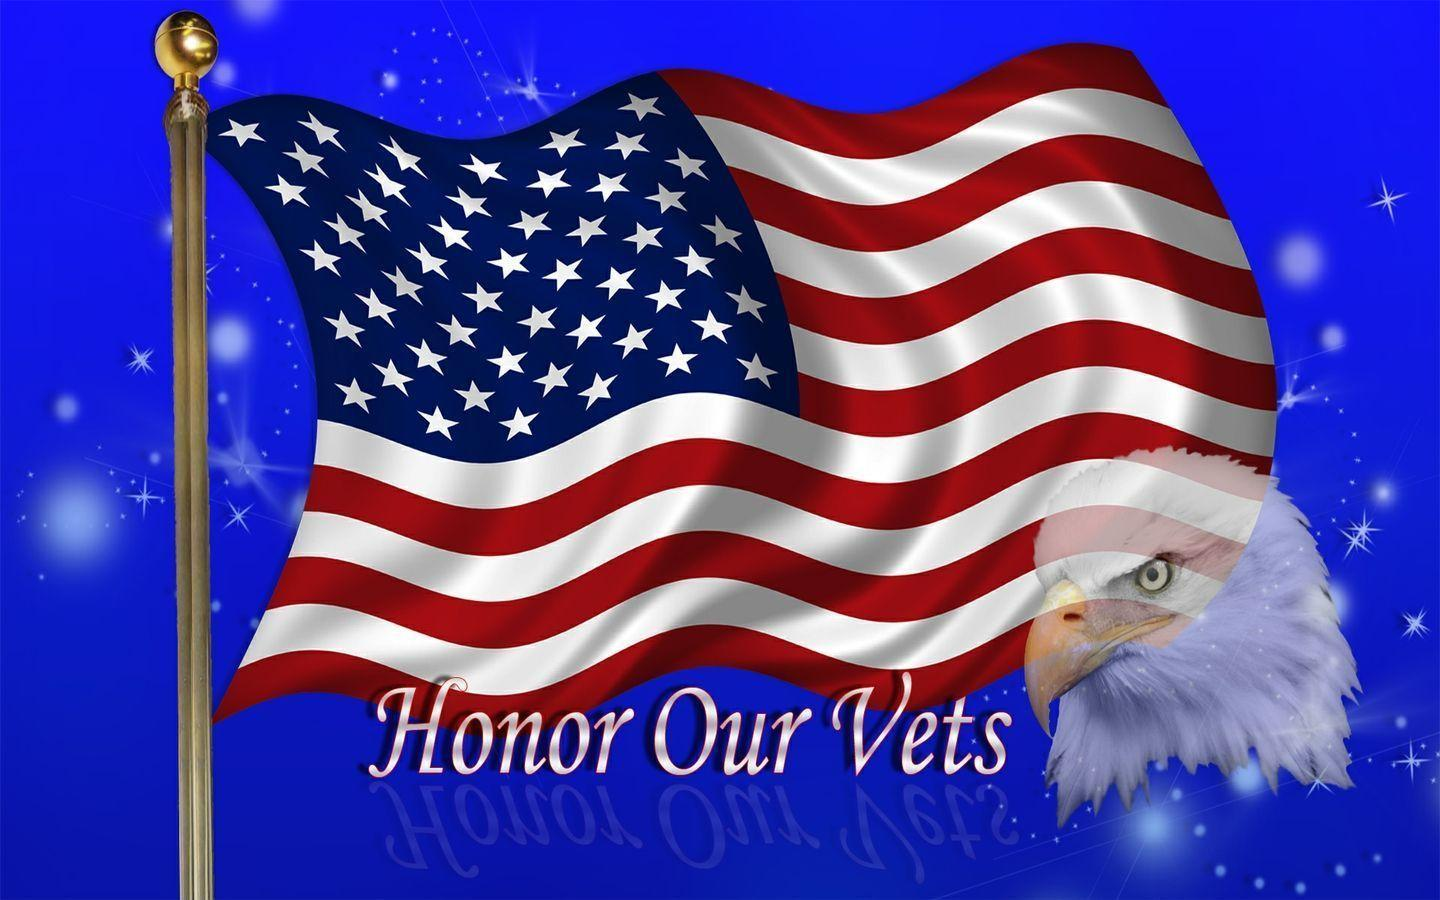 Free Wallpapers Memorial Day Pictures 5 HD Wallpapers